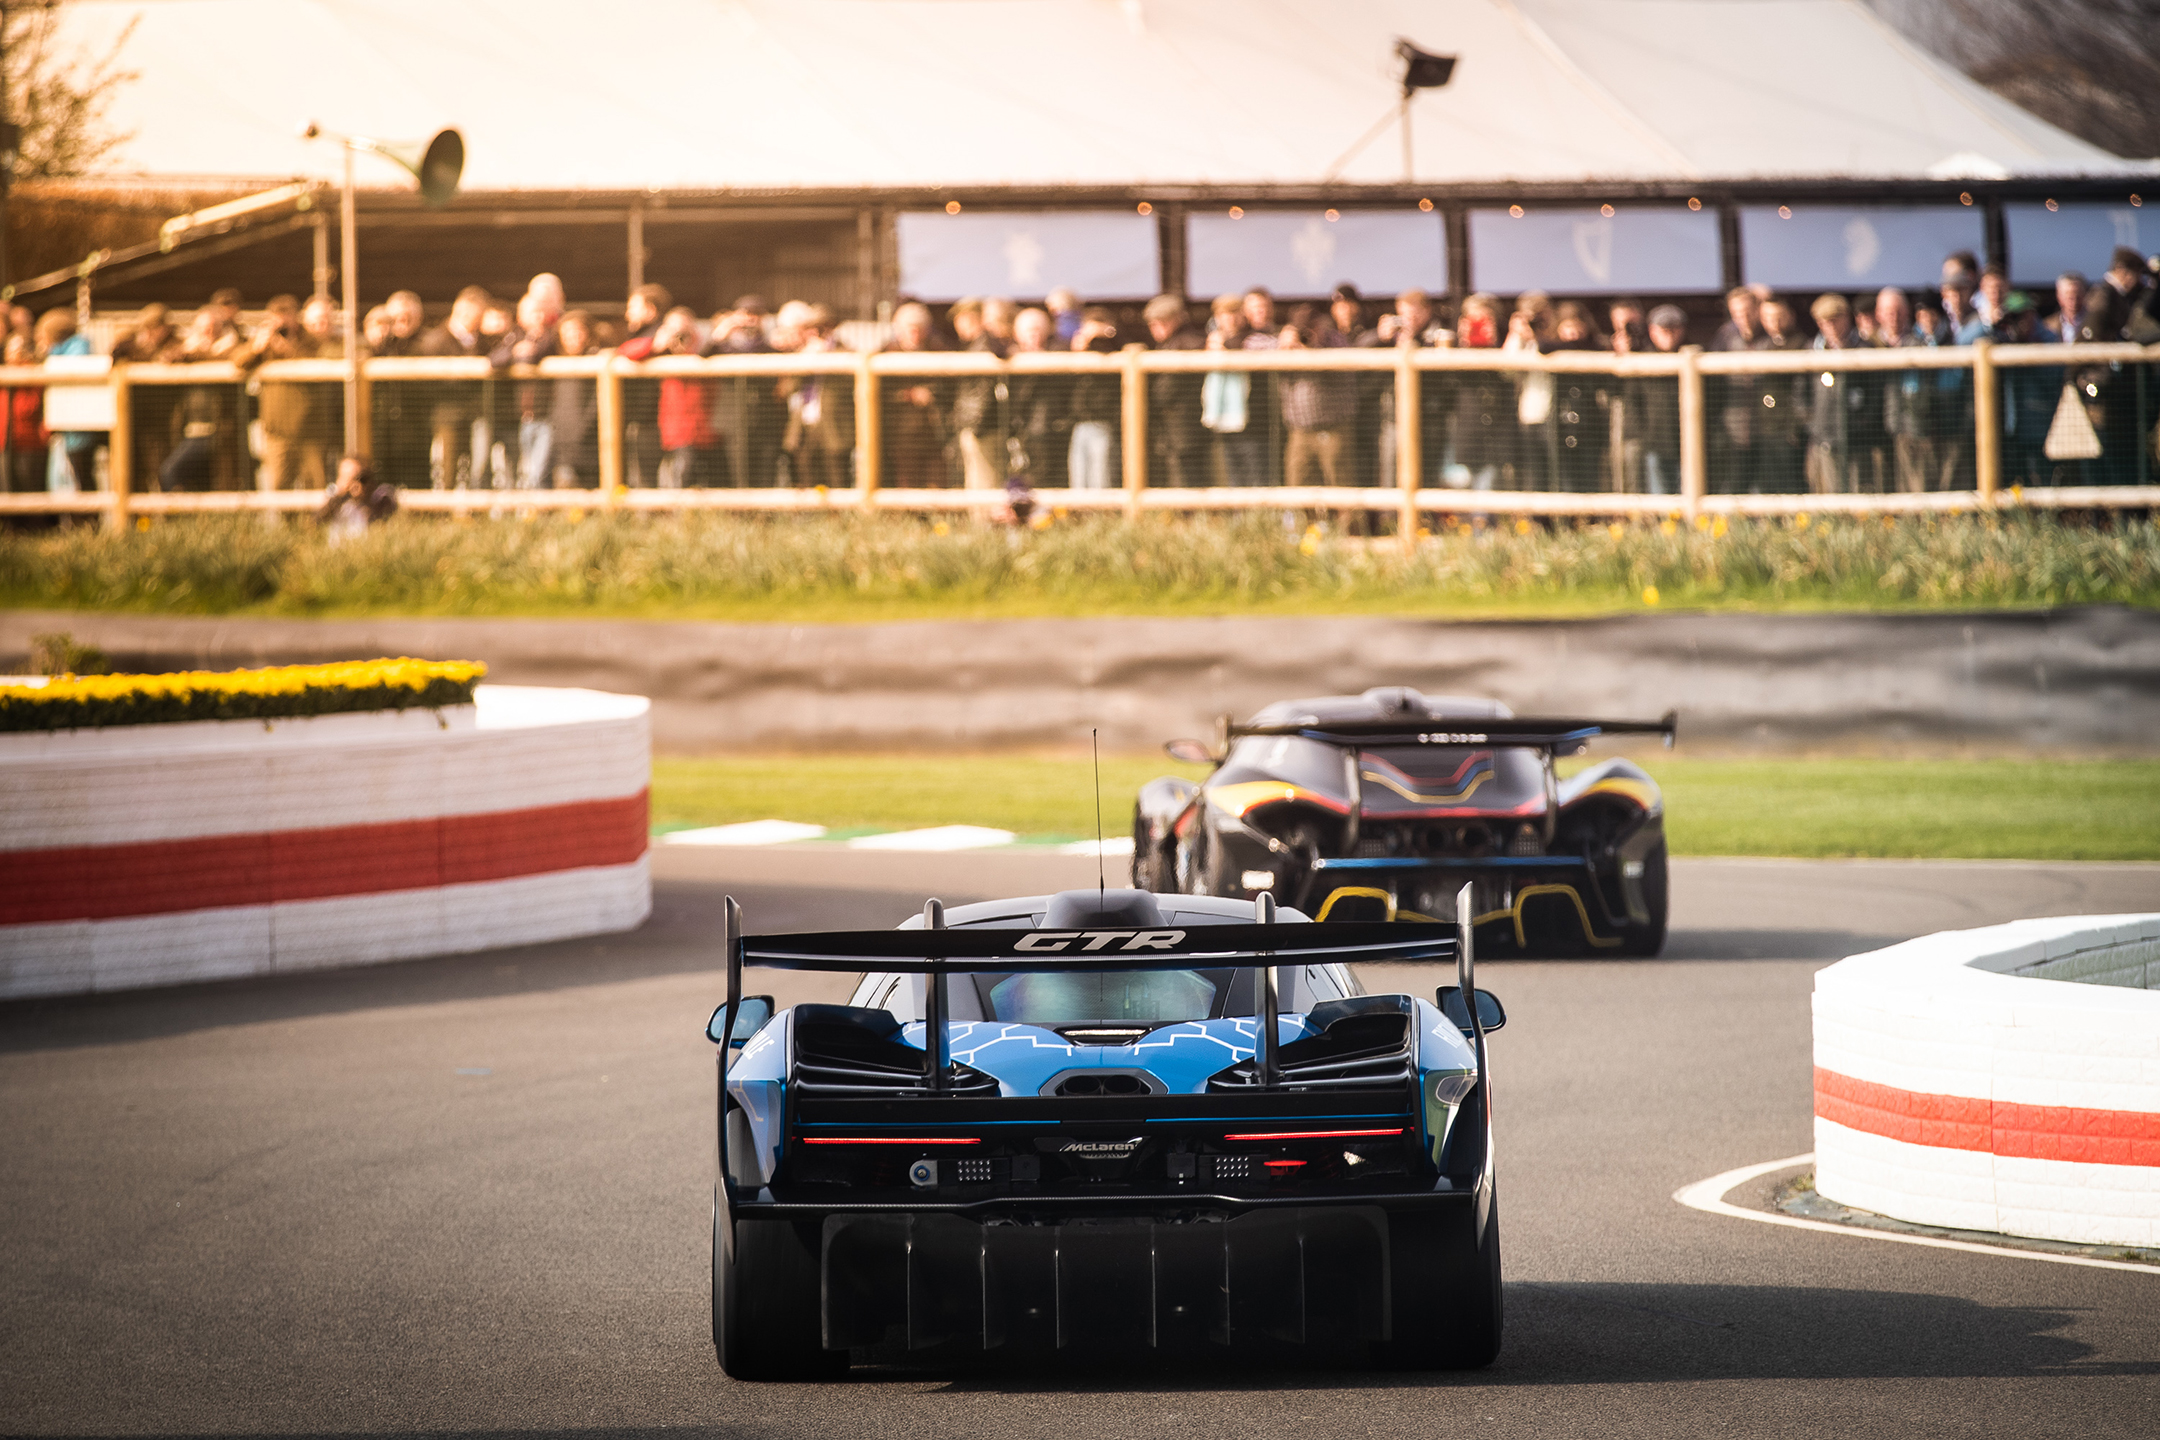 McLaren Senna GTR - Goodwood Motor Circuit - parade 77MM - 2019 - rear track - photo via McLaren Automotive